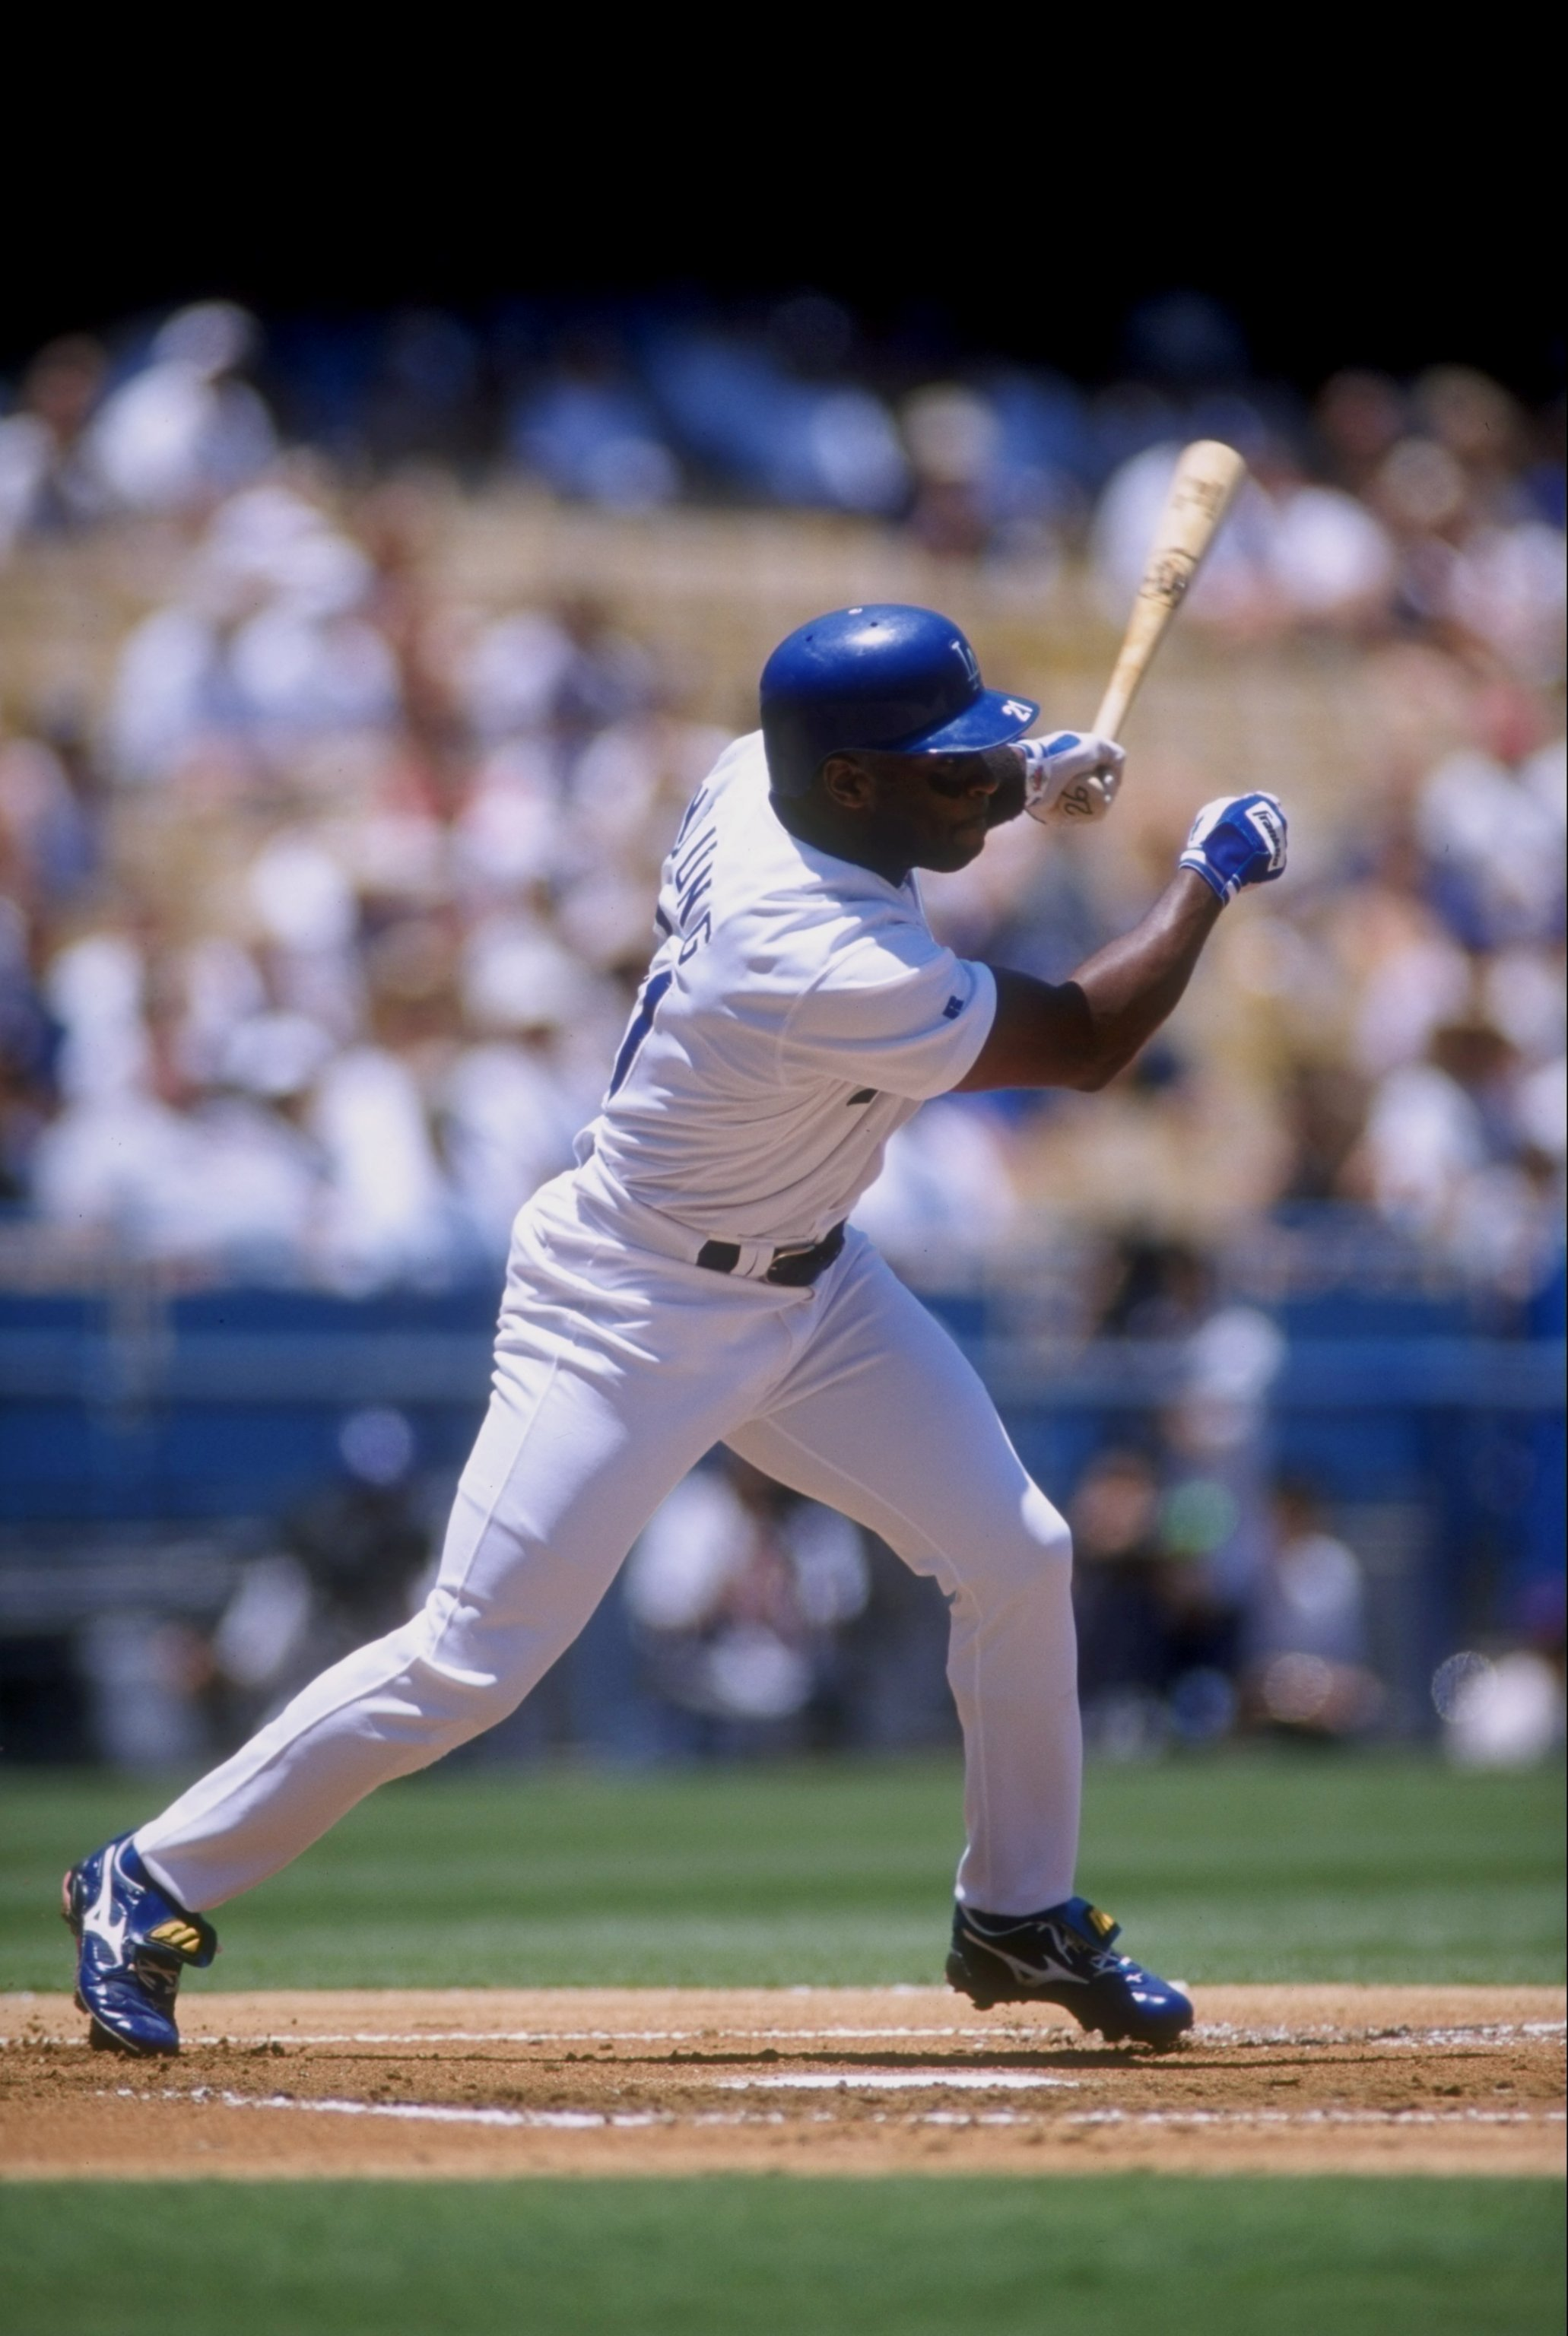 9 Jul 1998: Infielder Eric Young #21 of the Los Angeles Dodgers in action during a game against the San Diego Padres at Dodger Stadium in Los Angeles, California. The Dodgers won the game, 12-3.